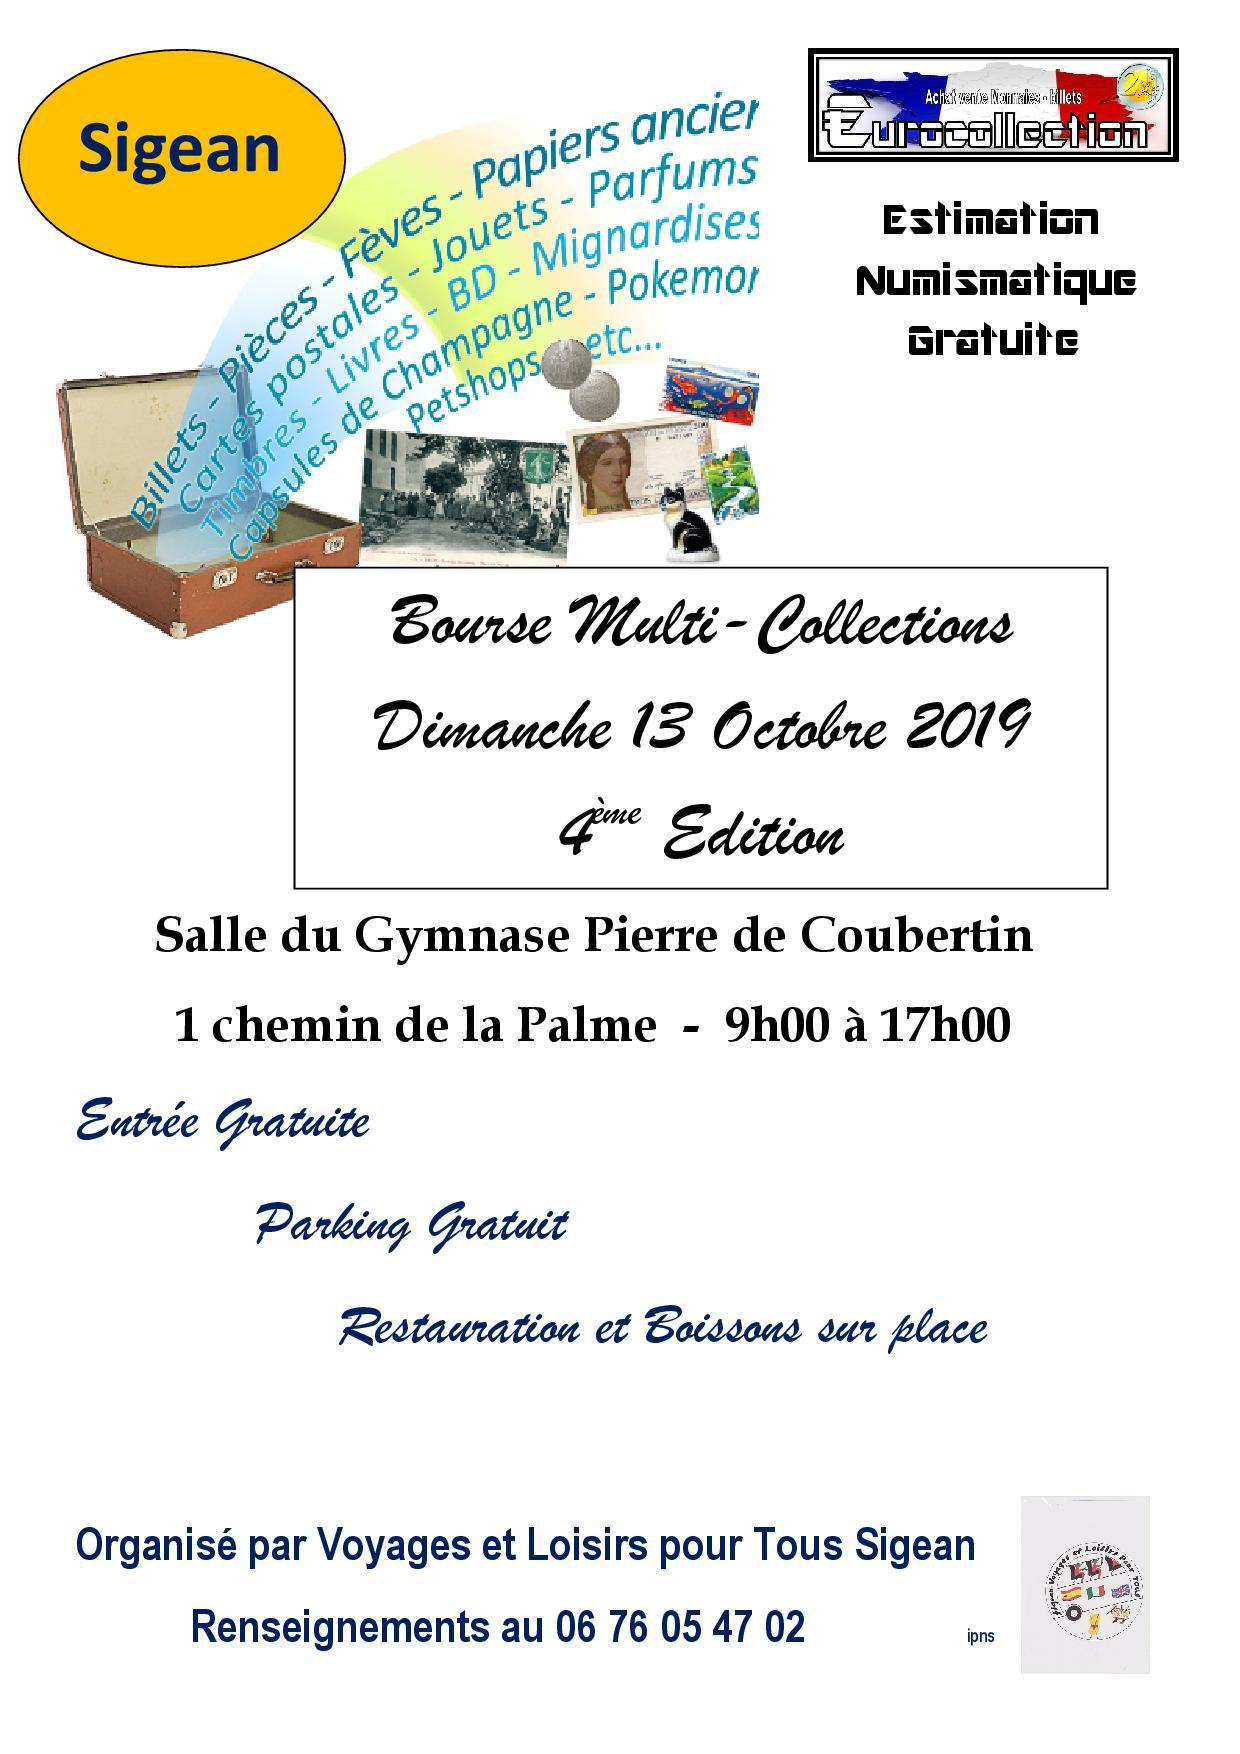 Sigean_Bourse_Multi-Collection_13_Octobre_2019